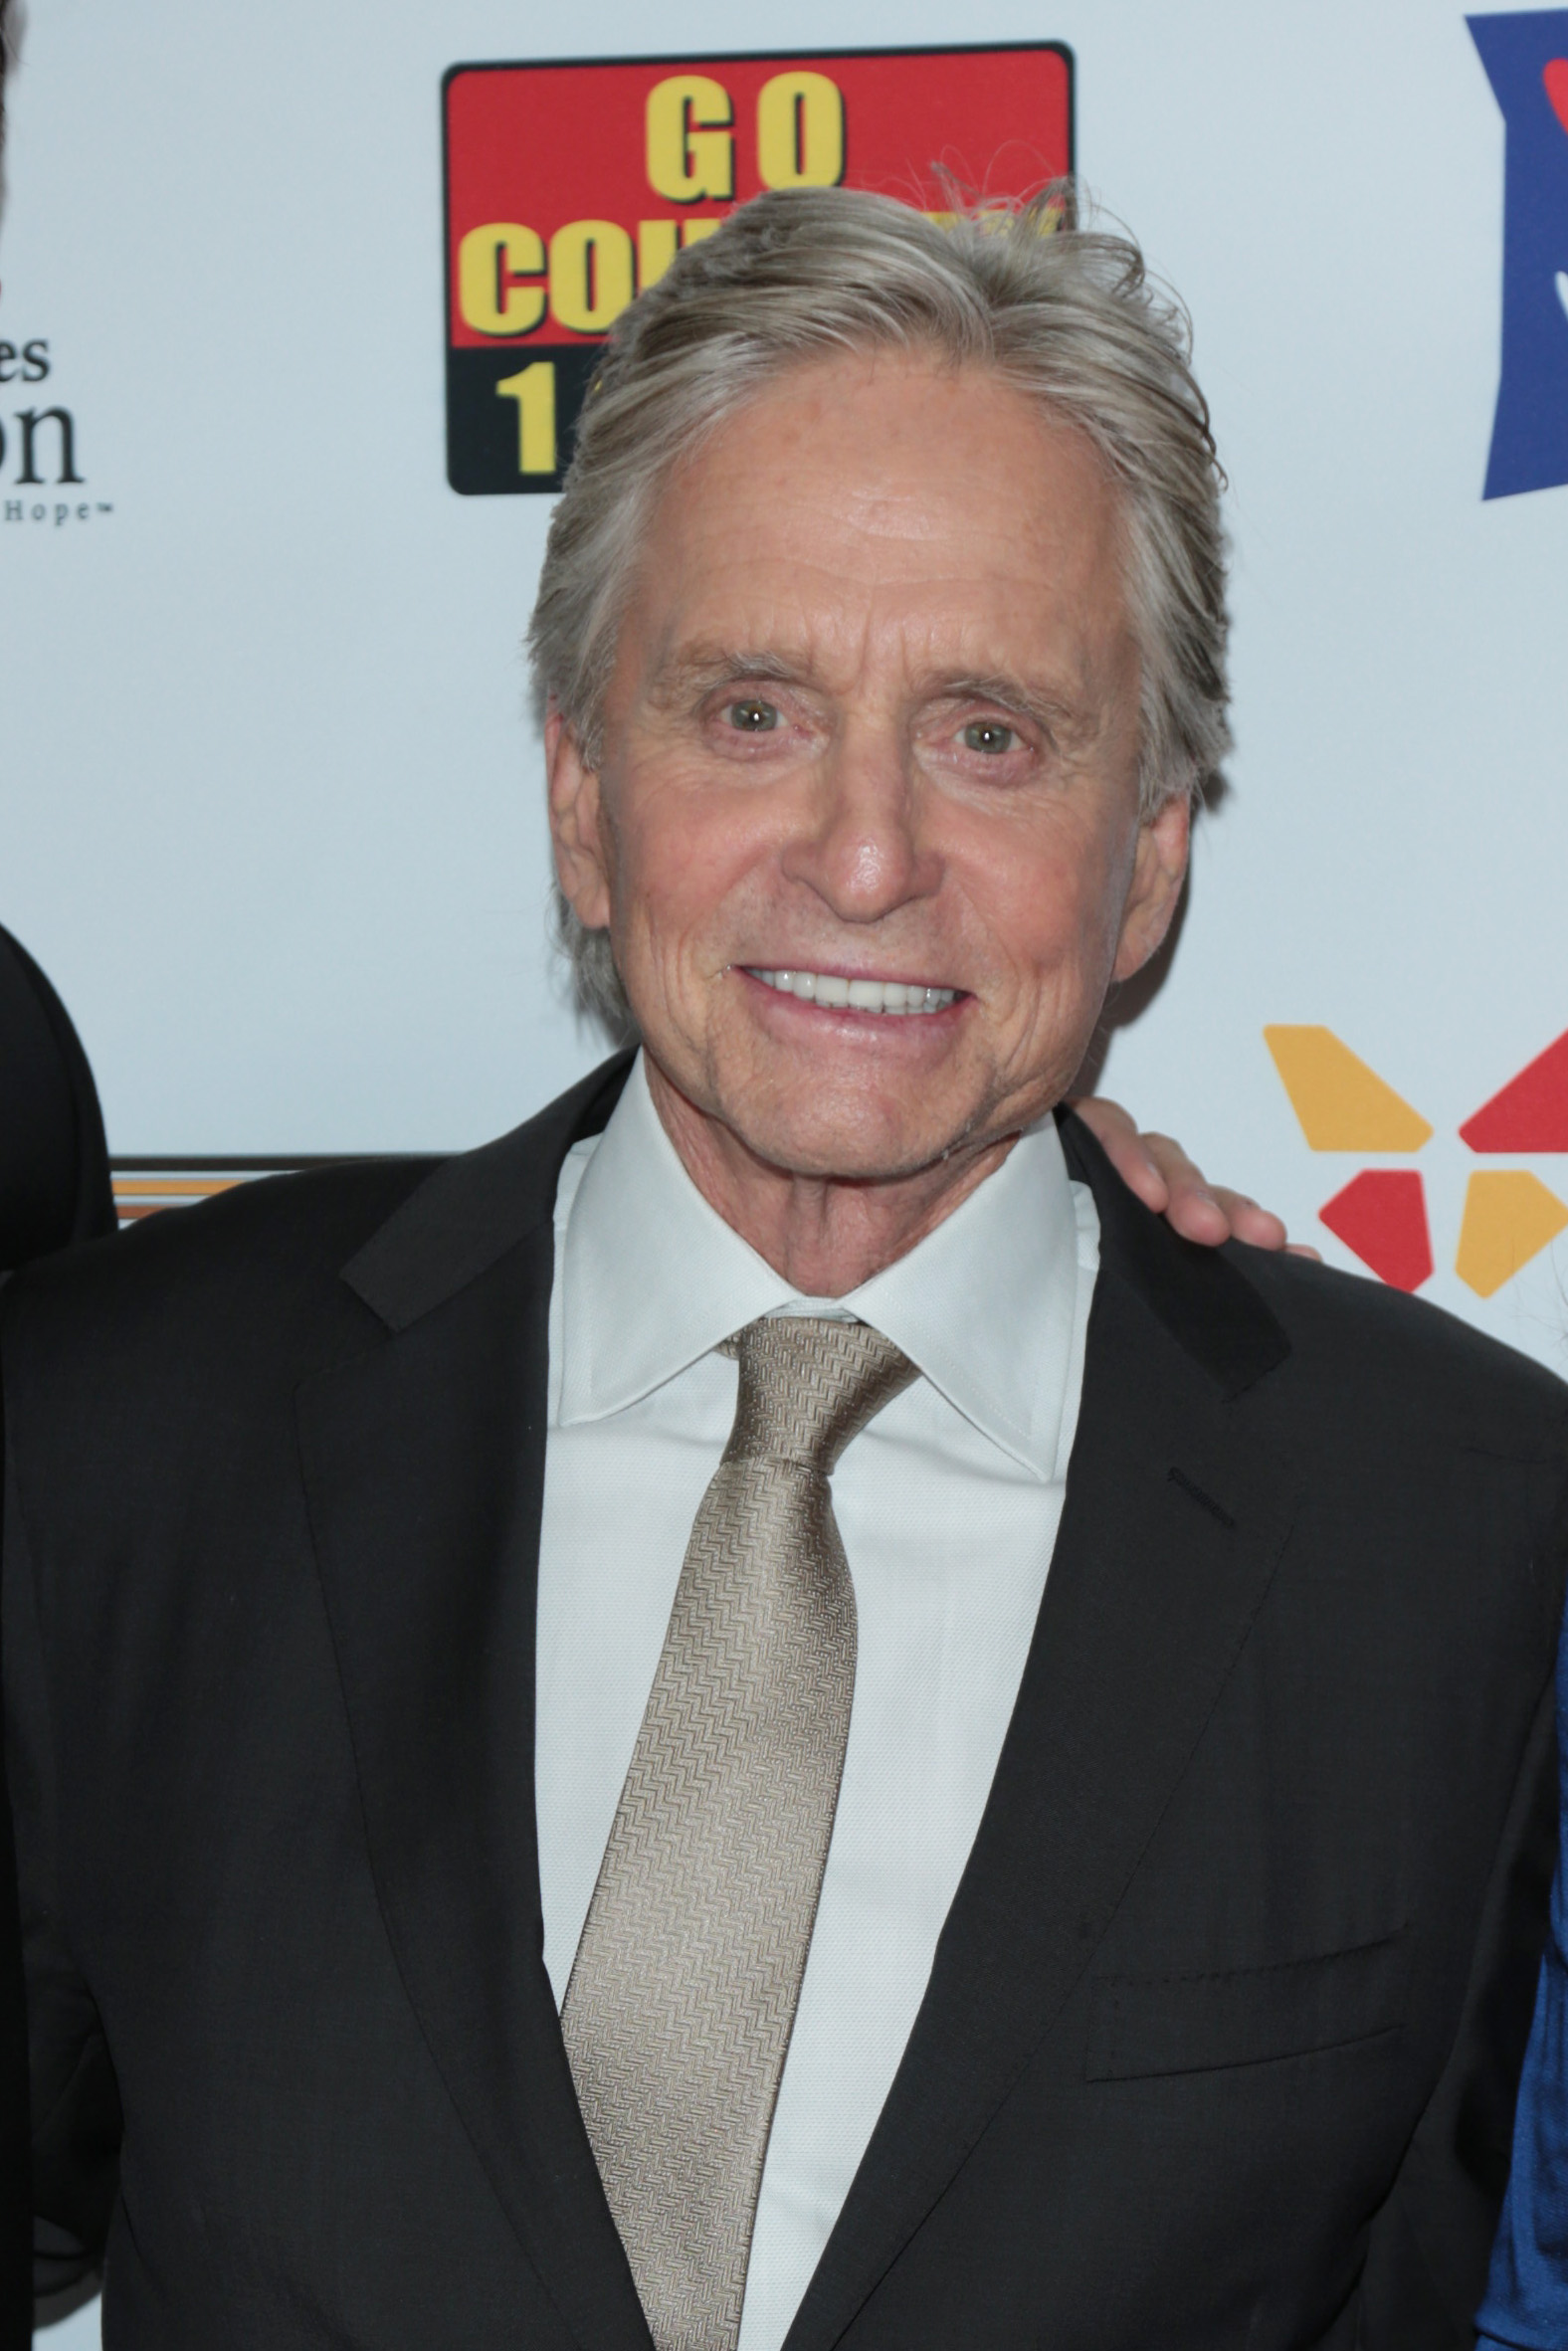 7th annual Los Angeles Mission's Legacy of Vision Gala tonight - Arrivals and Inside                                    Featuring: Michael Douglas                  Where: Los Angeles, California, United States                  When: 09 Nov 2017                  Credit: Guillermo Proano/WENN.com